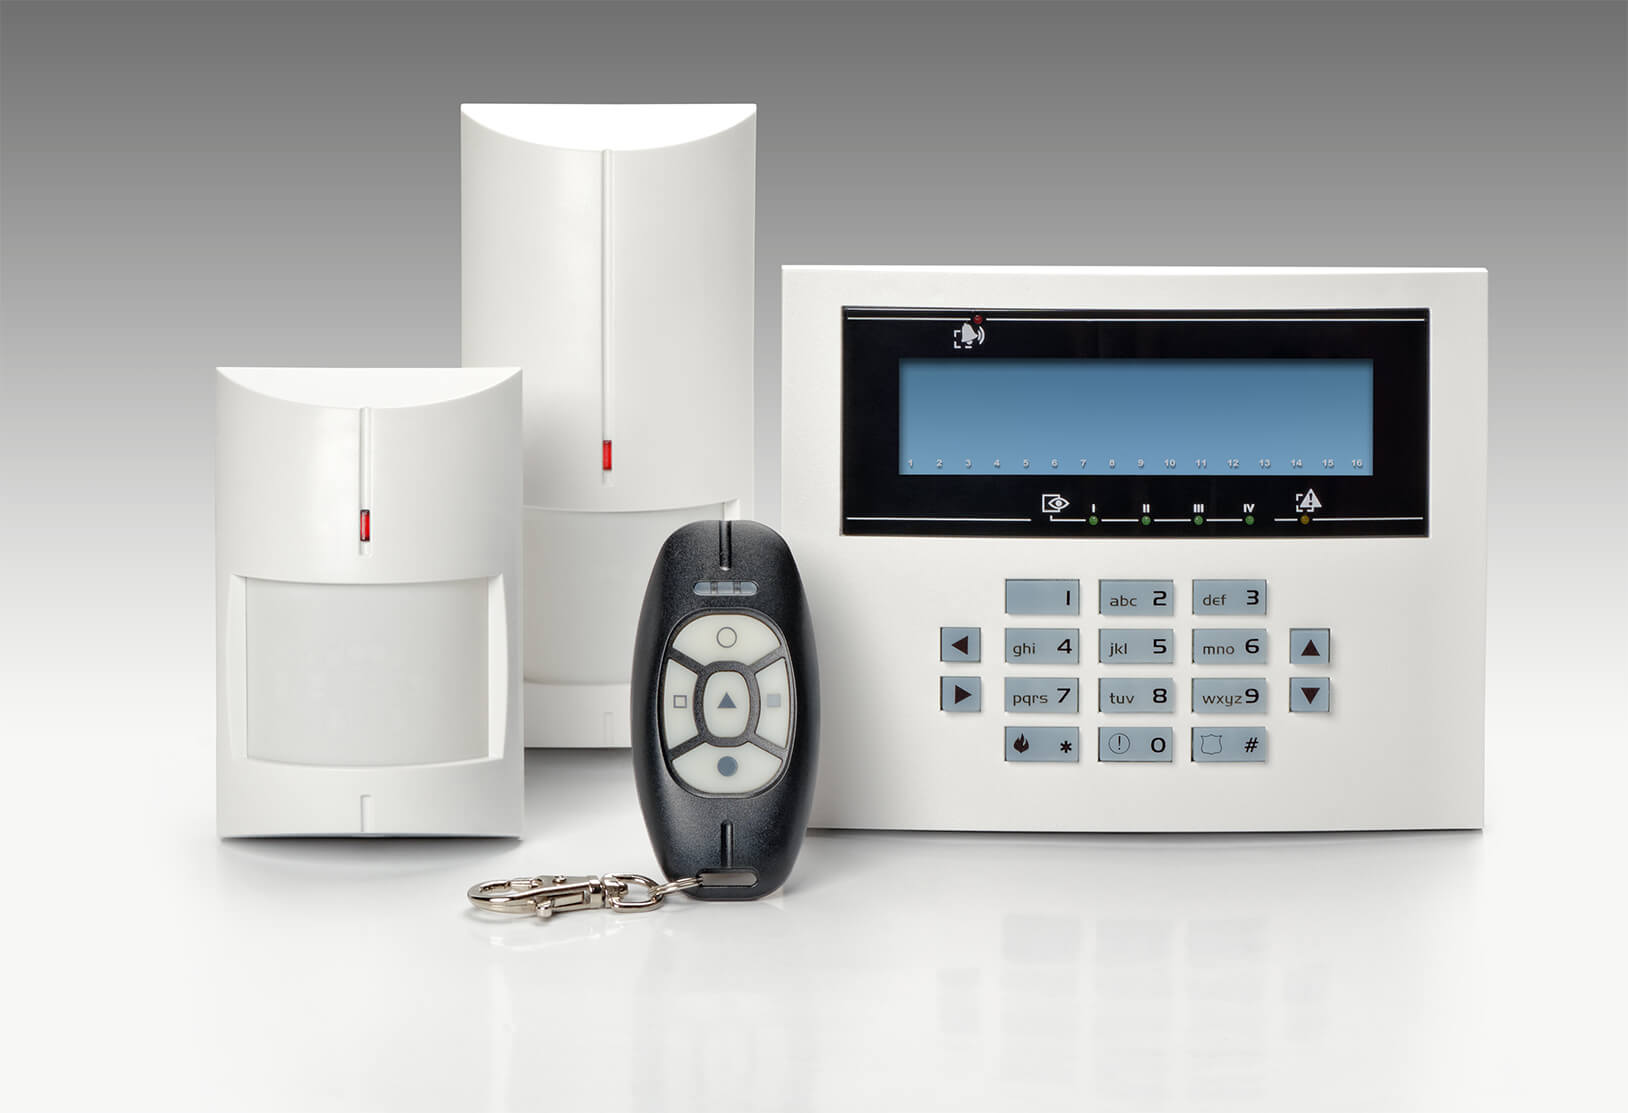 Commercial Burglar Alarms For Business in Ealing W5  - Local Ealing W5 burglar alarm company.Call 02078872244 - Dedicated to Safety & Security. Companies, shops and homes ..